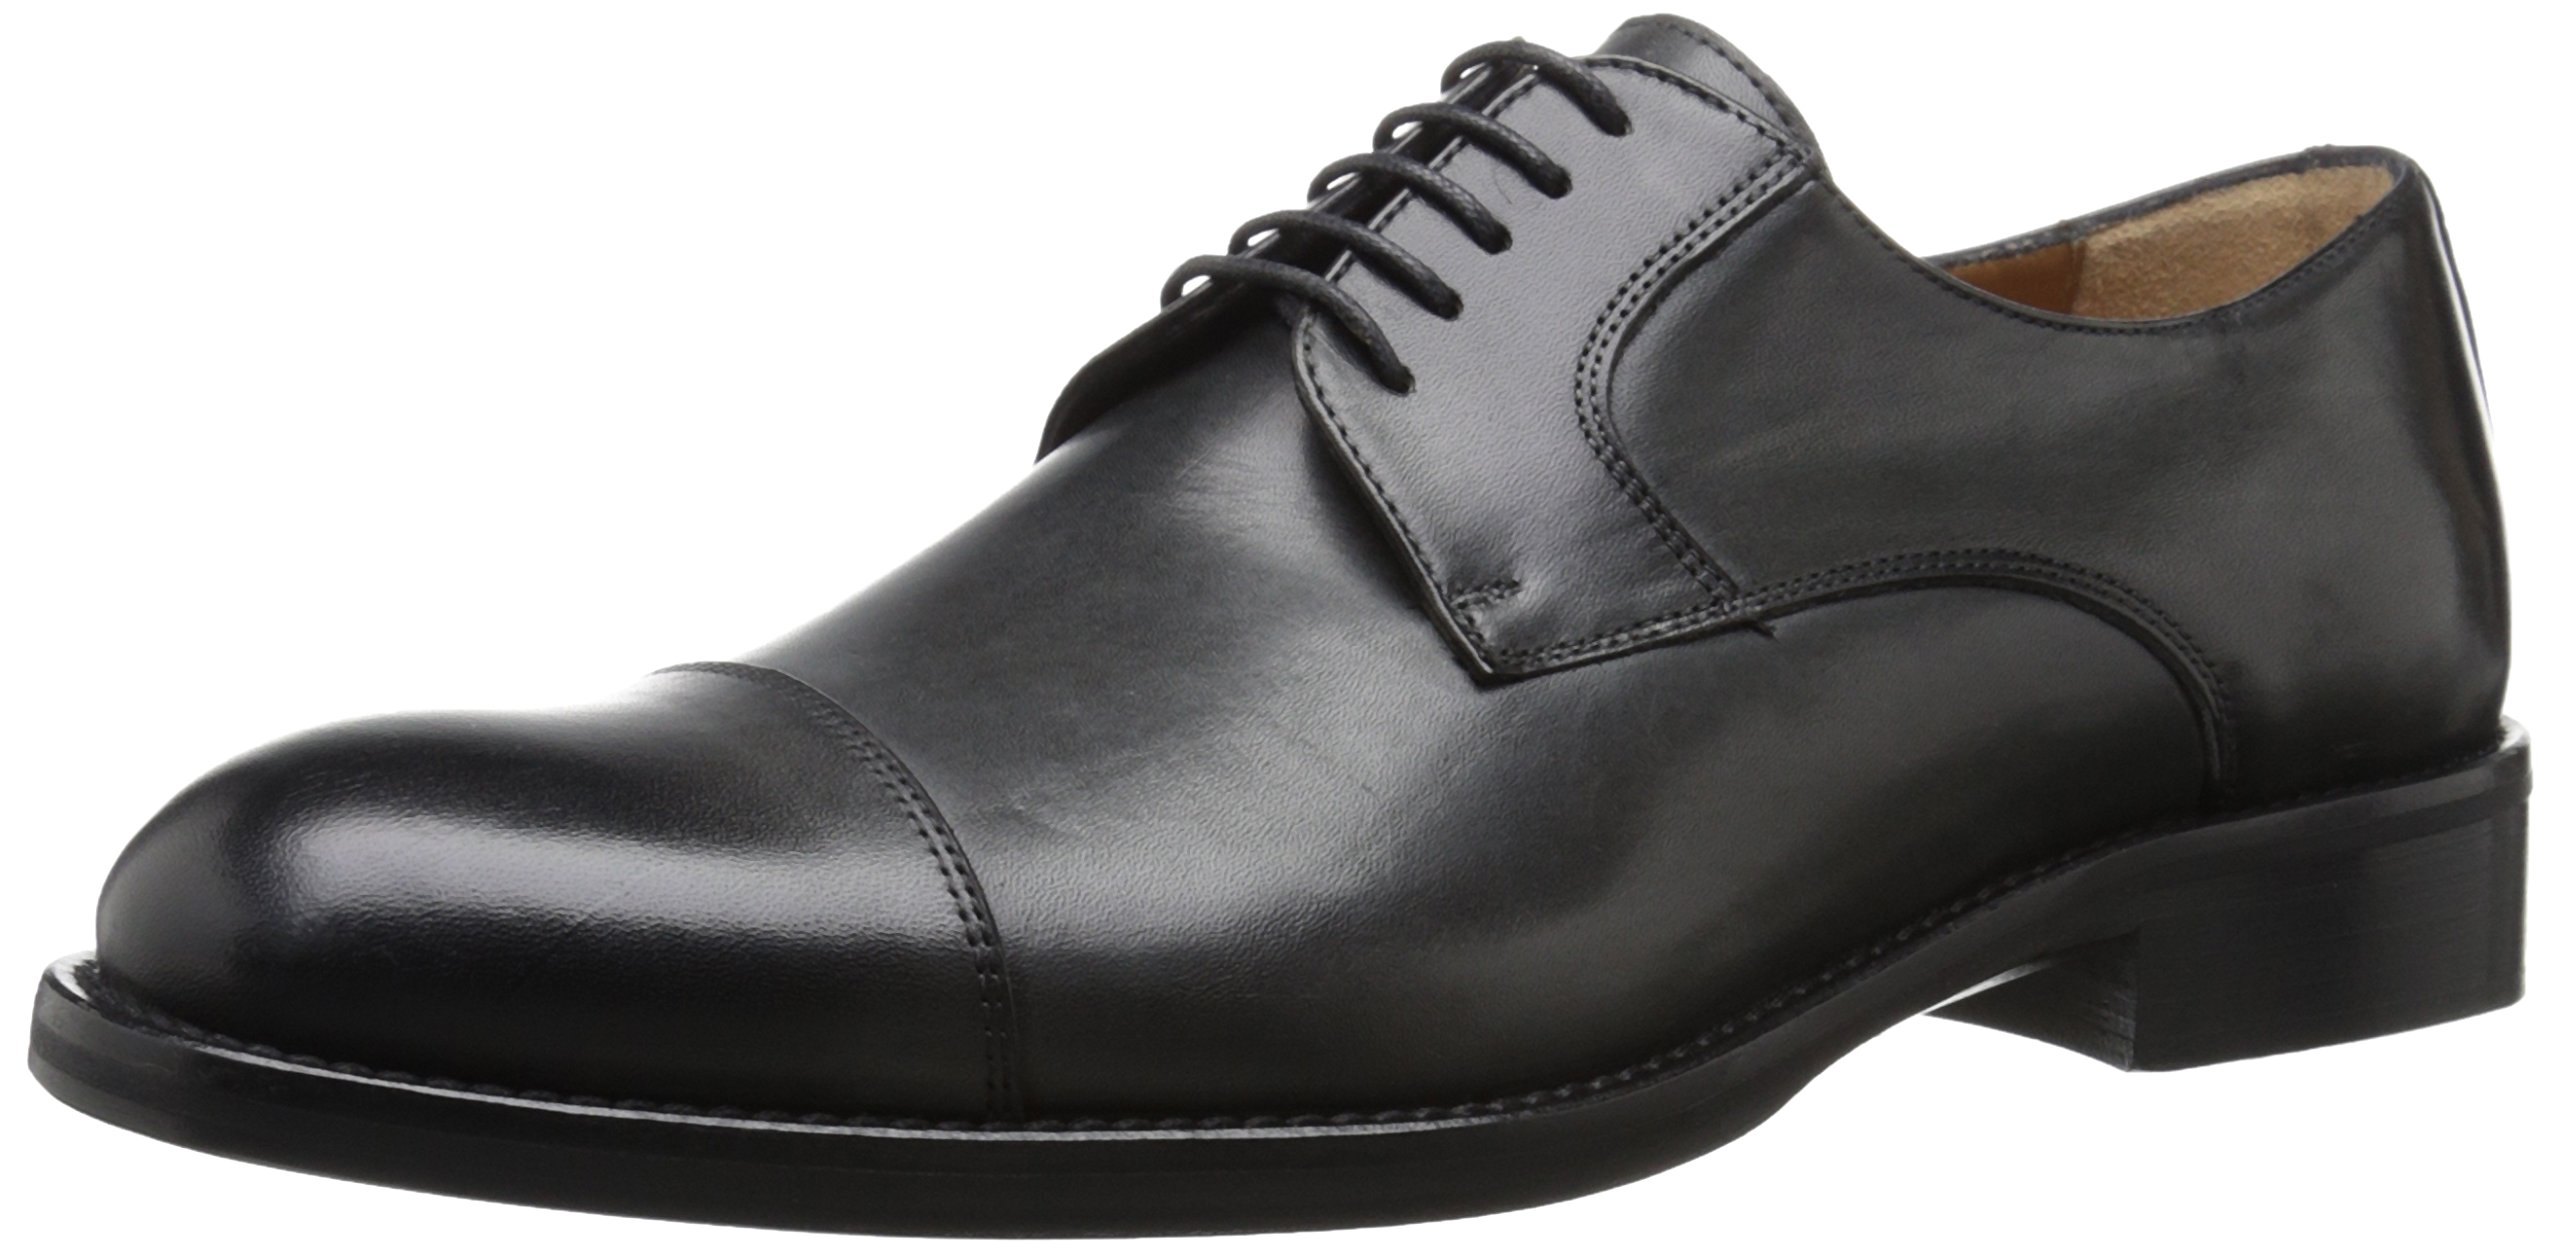 Kenneth Cole New York Men's Travel Guide Oxford, Dark Grey, 13 M US